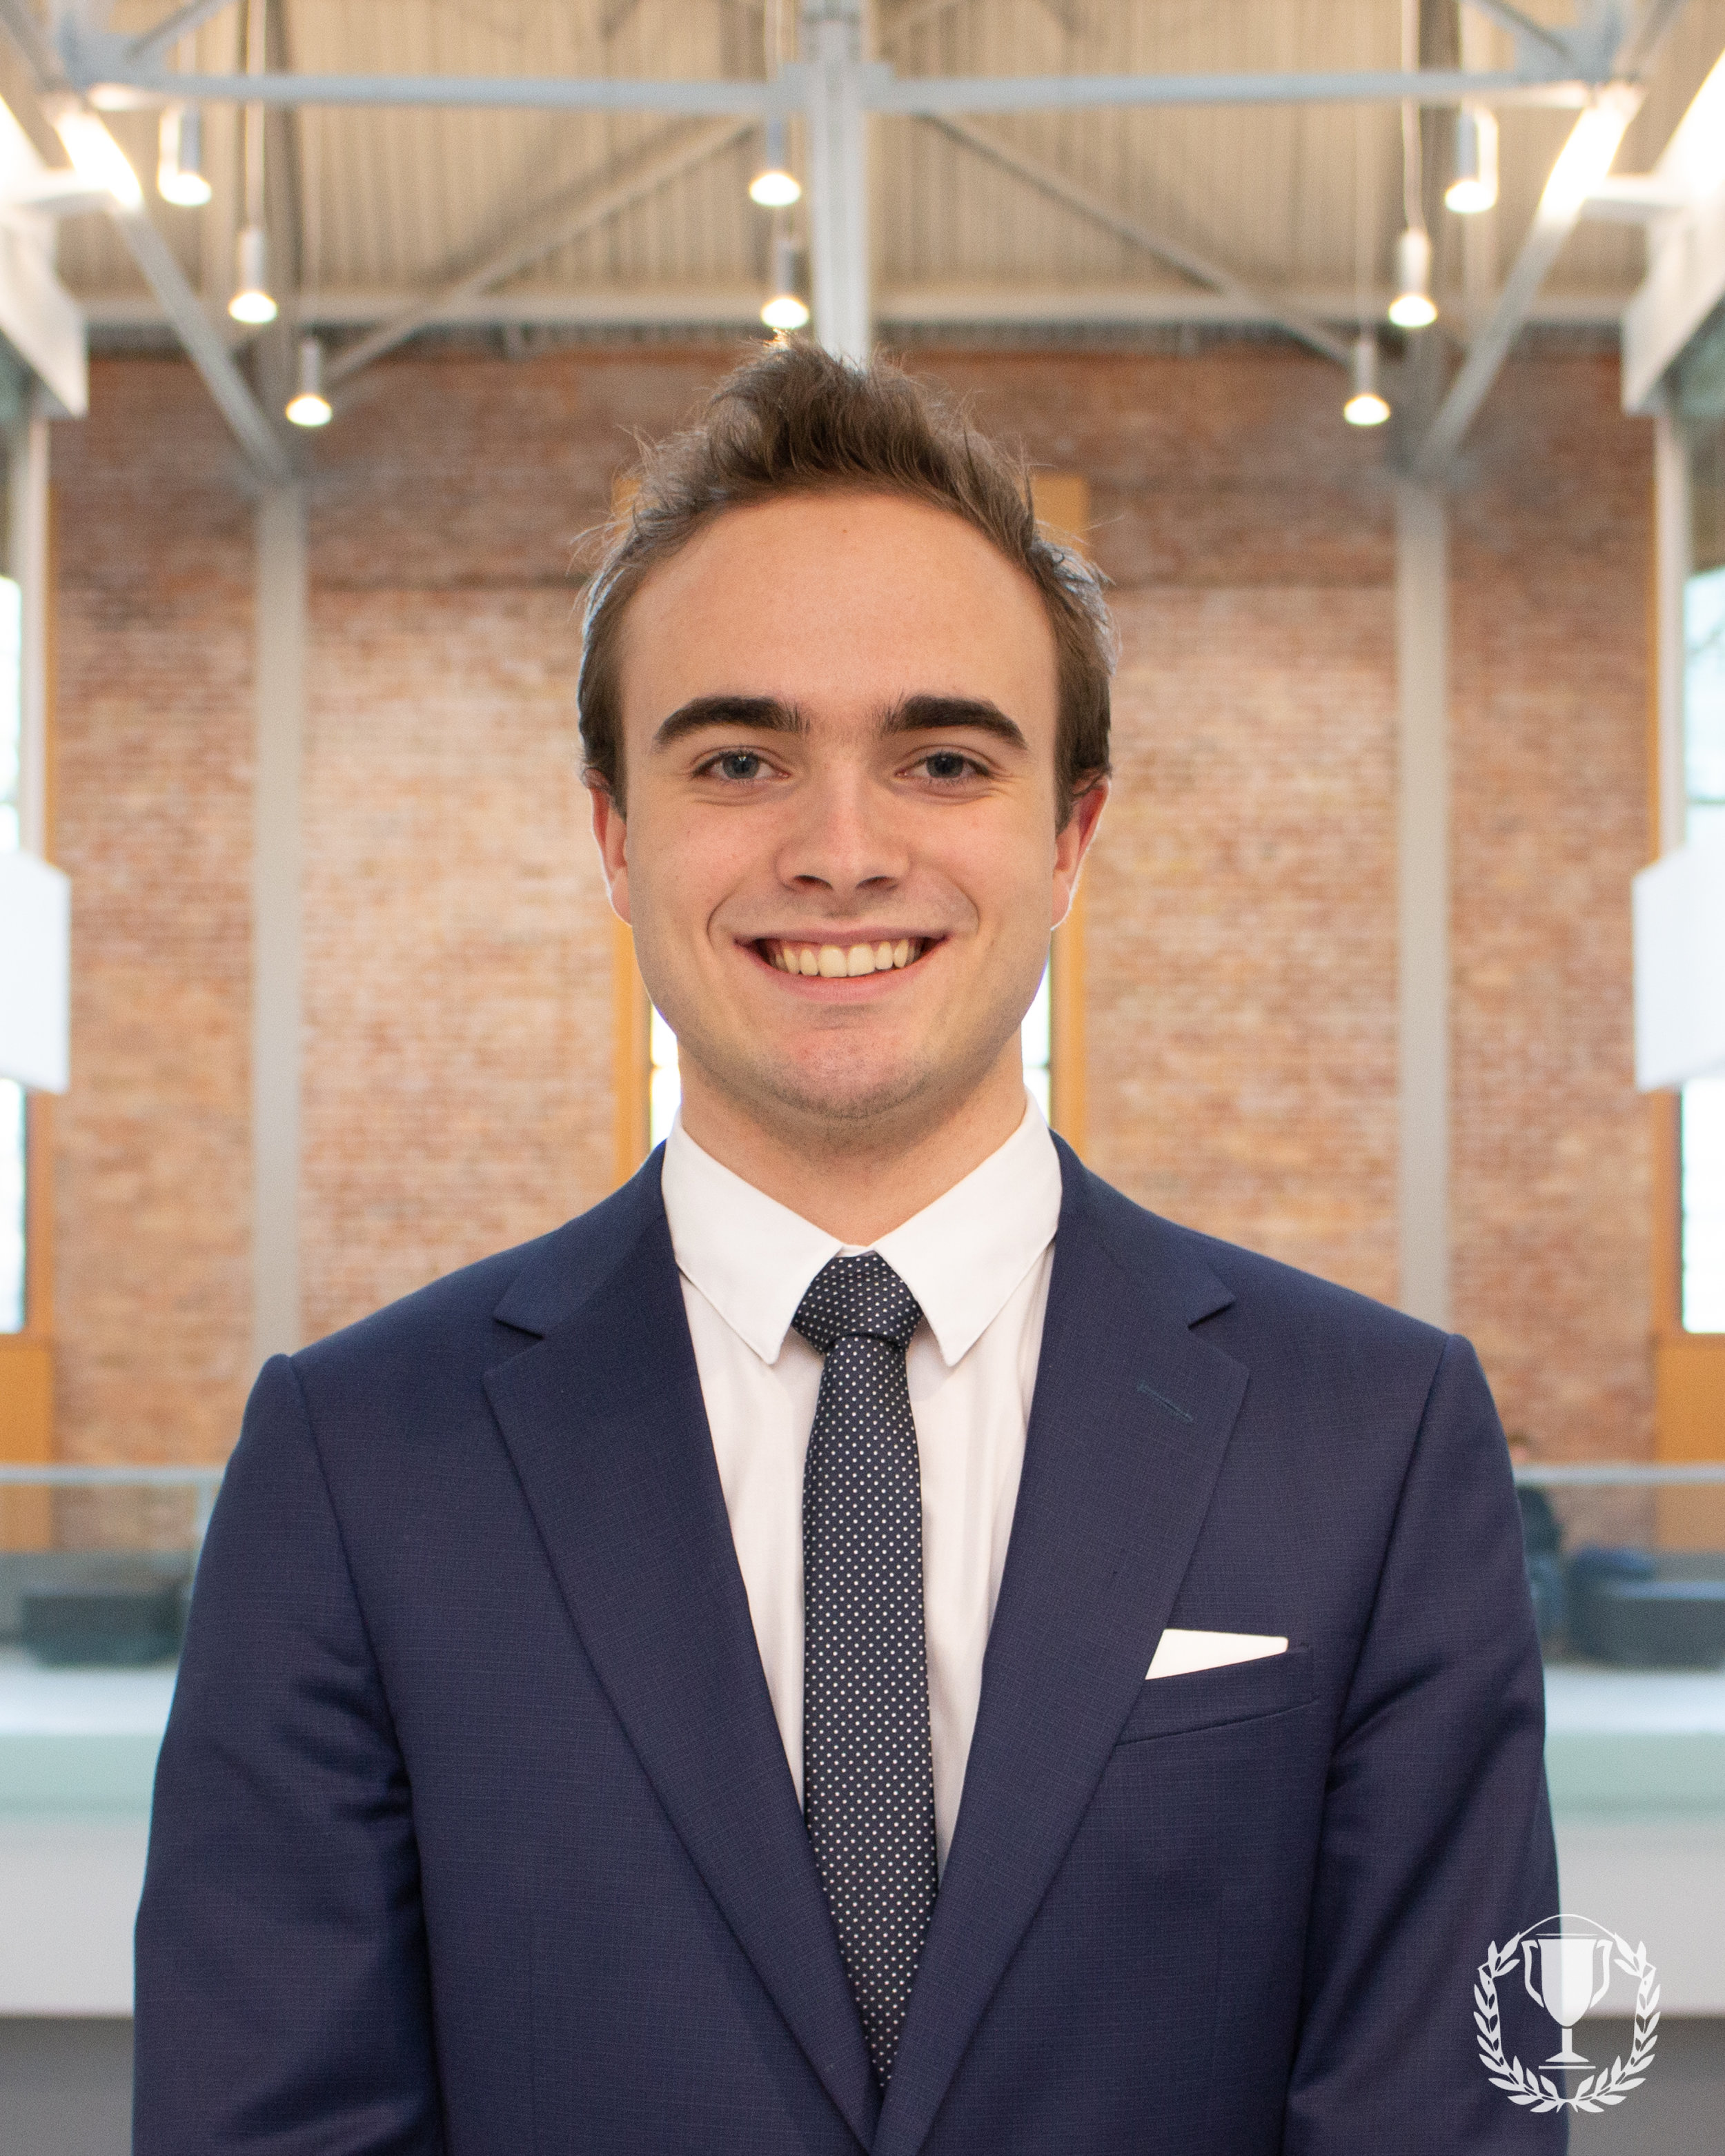 Julien Curlier - Co-Chairperson   Julien is excited to be returning to the I.C.B.C. Executive for the 42nd - yes, 42nd - year of this amazing competition. As Co-Chairperson, he is thrilled to be working alongside Julie and with their incredibly talented Executive Team to continue to set the global standard for case competition excellence. Given I.C.B.C. is proudly a student-run competition, Julien would like to take the opportunity to extend a big Canadian thank you to all of I.C.B.C.'s judges, case writers, sponsors and of course, competing schools - without you, there would be no legacy. In his free time, you will probably find Julien travelling on a plane, trying to be athletic, or being compared to a famous person that he supposedly looks like.